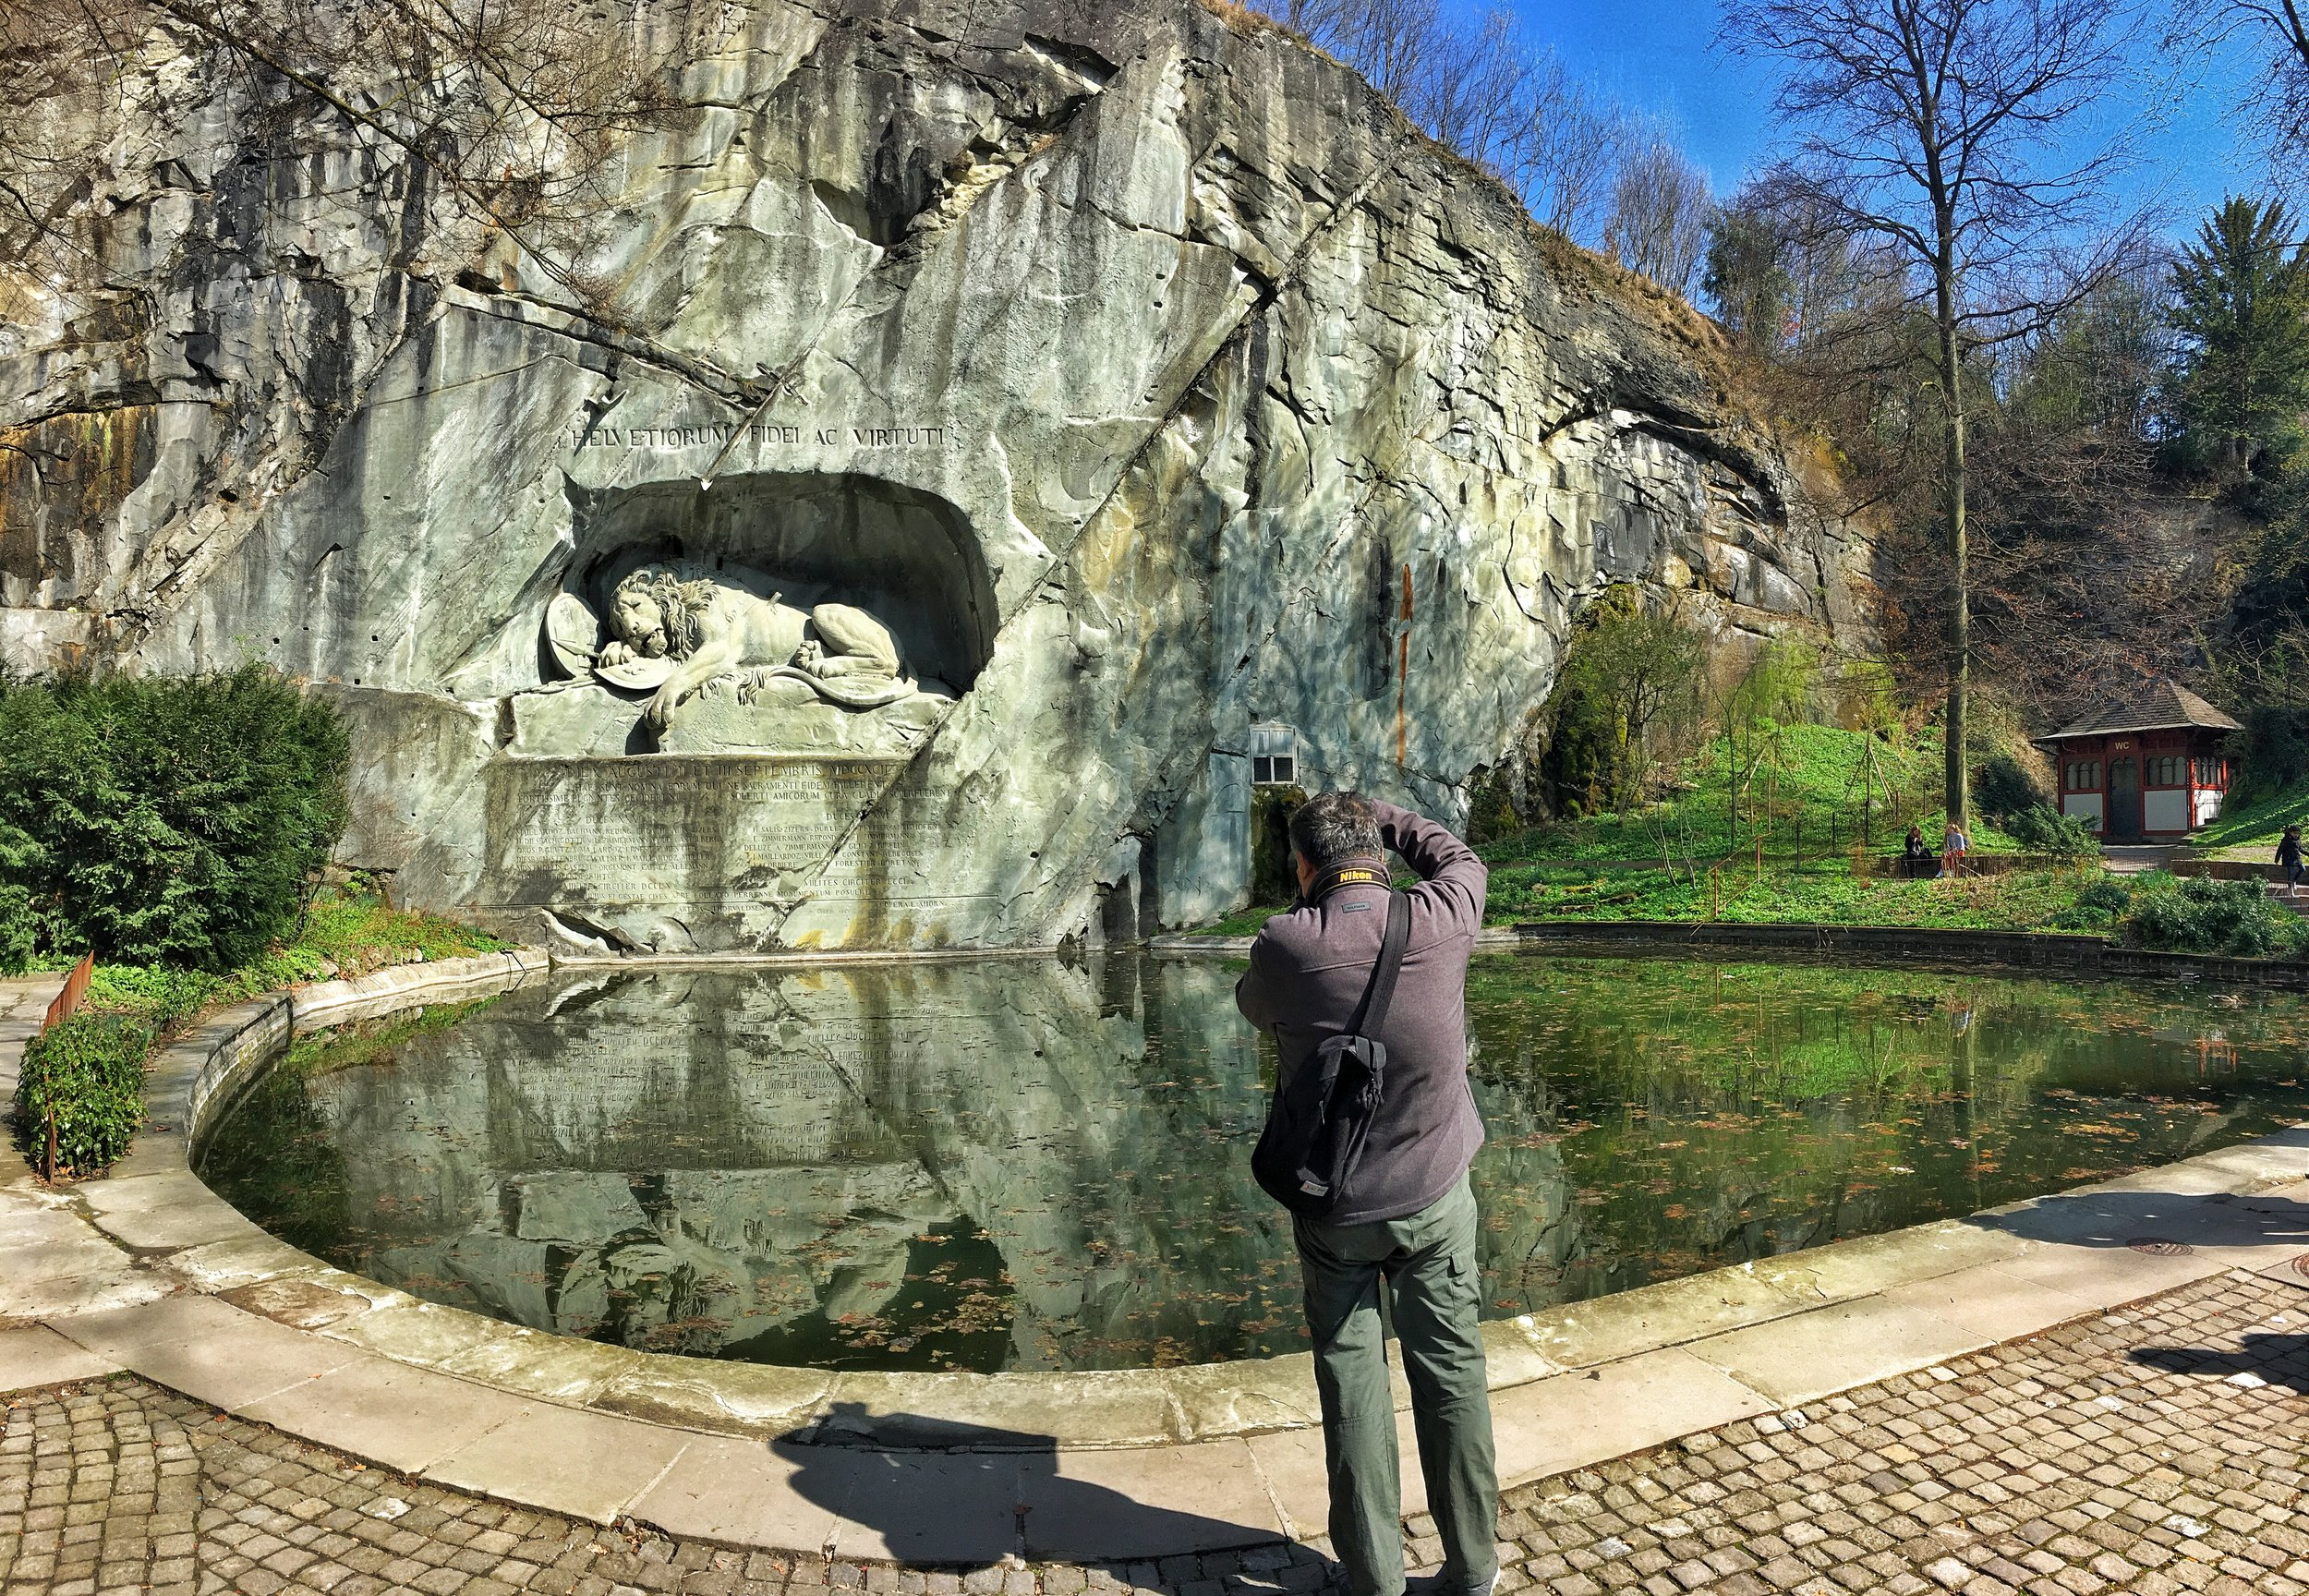 The  Lion Monument  is an impressive sculpture that commemorates the Swiss Guards who died in battle during the French Revolution. And one of my favorite cafes is conveniently located across the street.